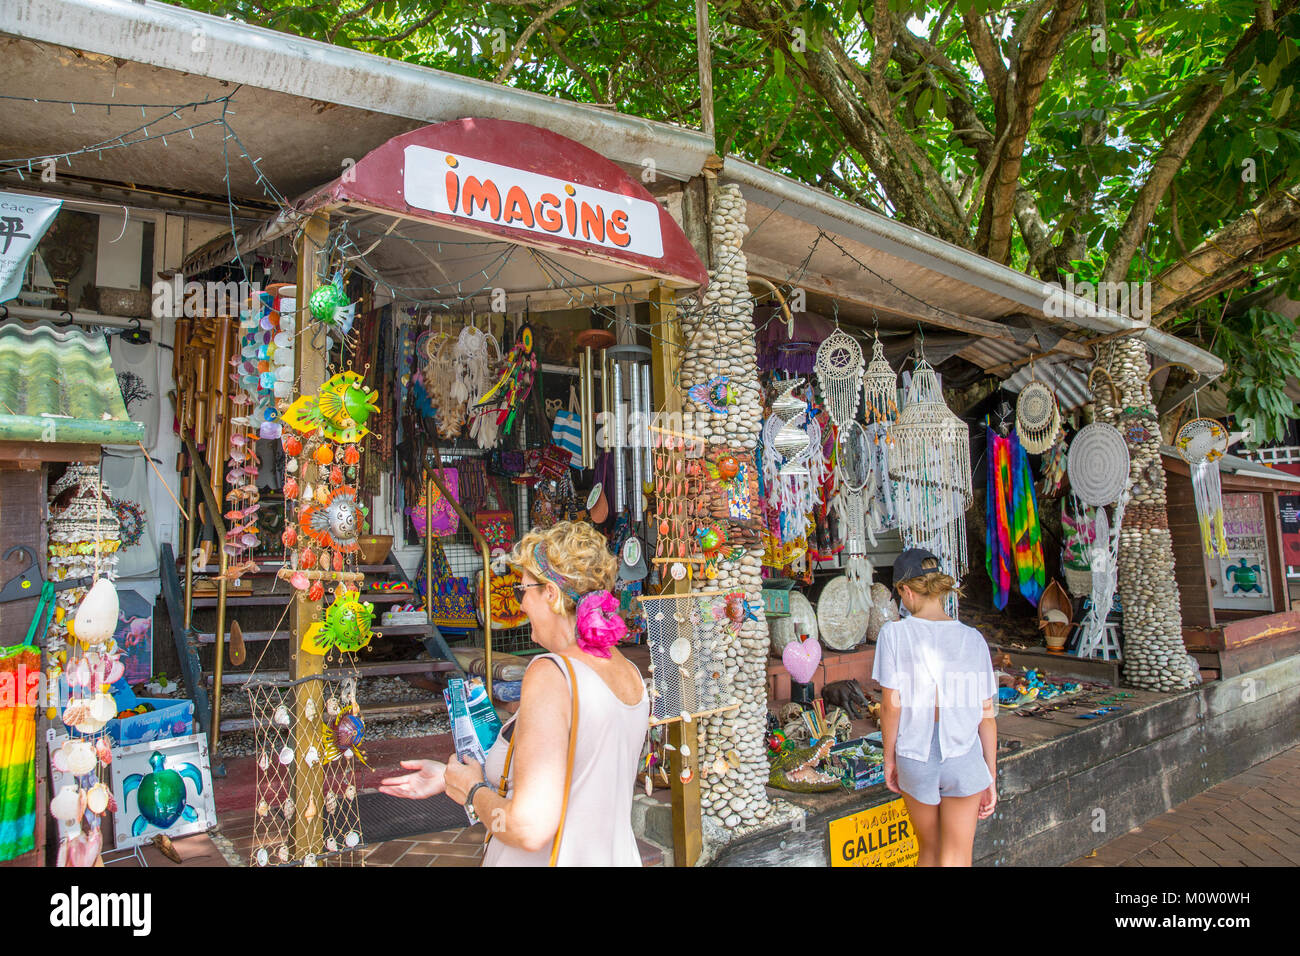 General store on macrossman street in Port Douglas selling a range of eclectic goods and bric a brac, Port Douglas,Queensland Stock Photo